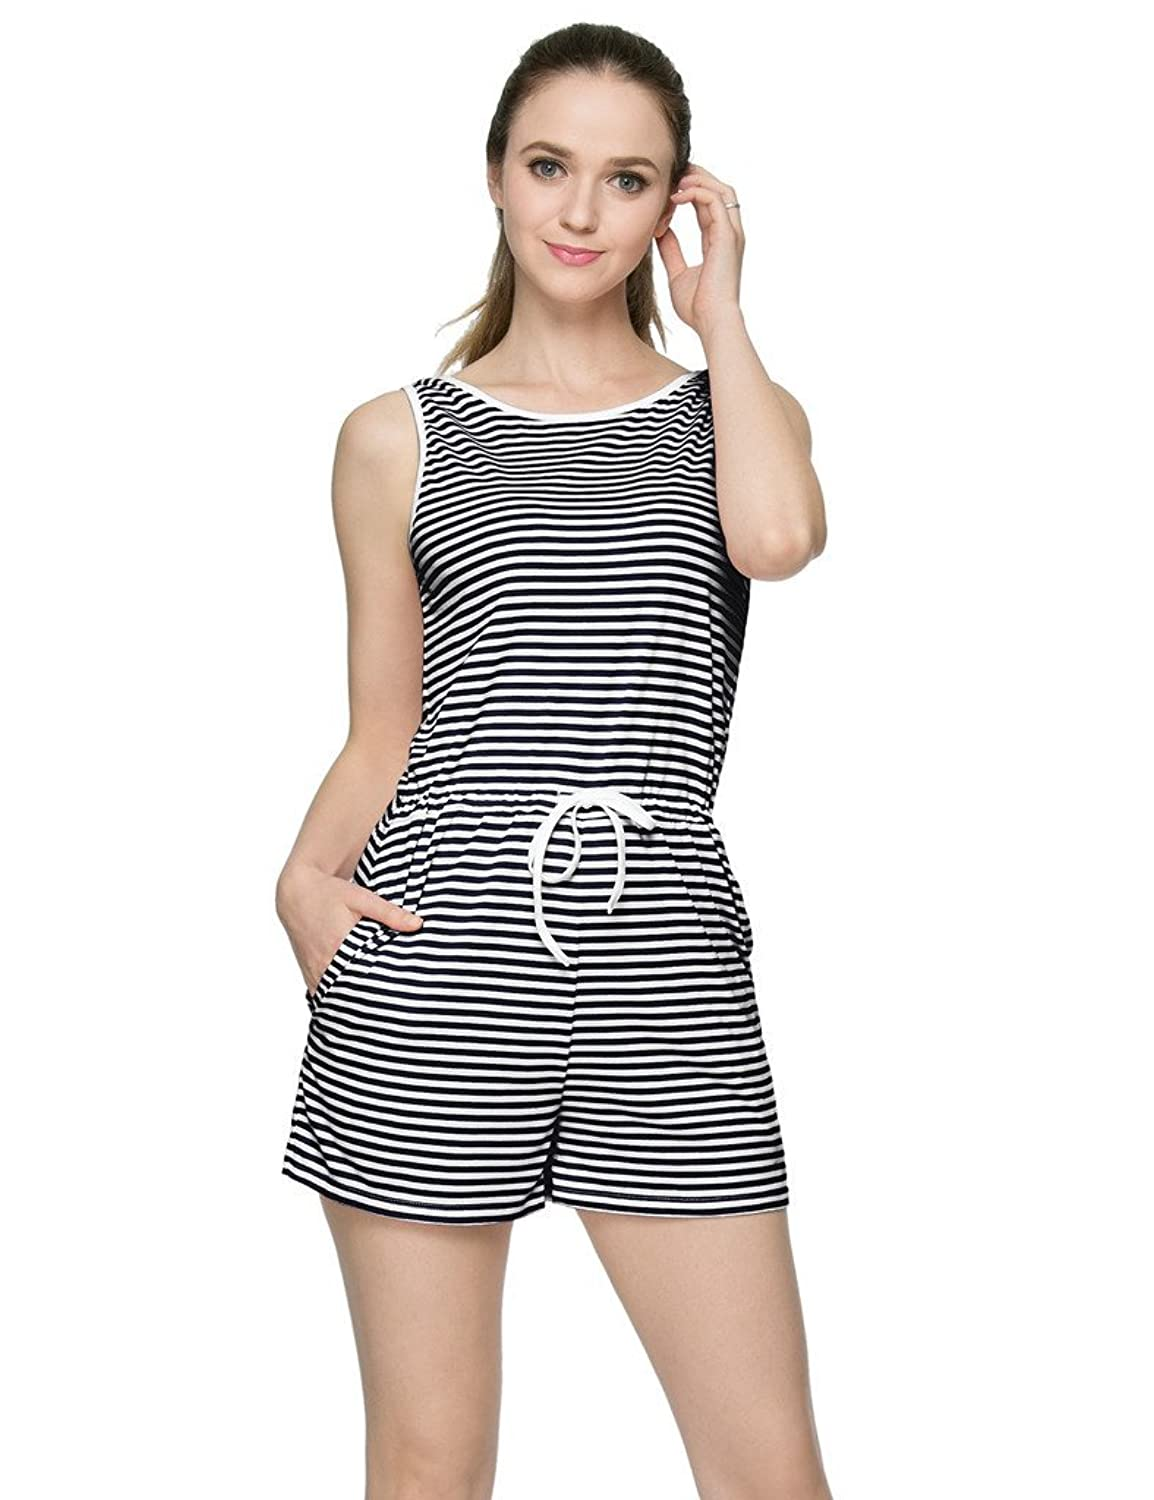 JXStar Damen Leibchen ärmel Striped Sommer Playsuits S-XXL